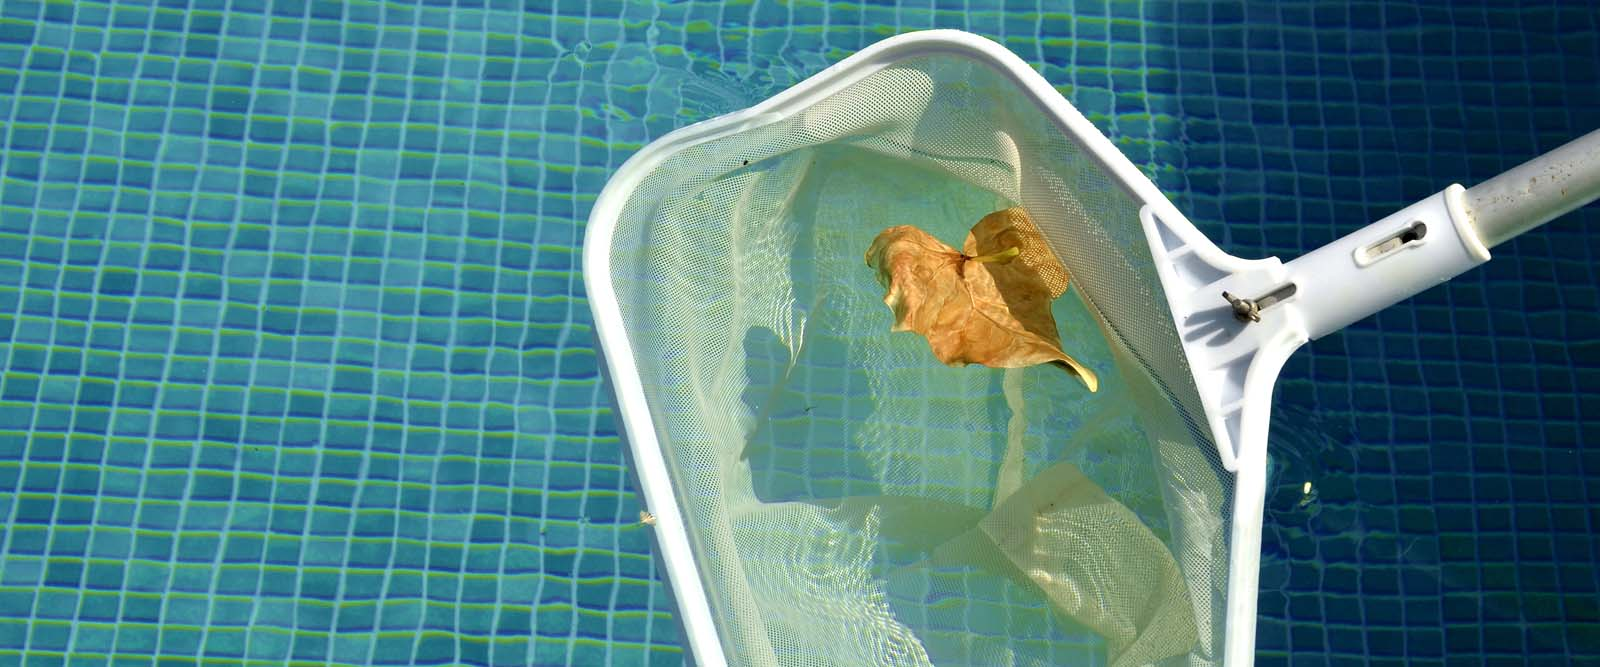 leaf-in-pool-1600